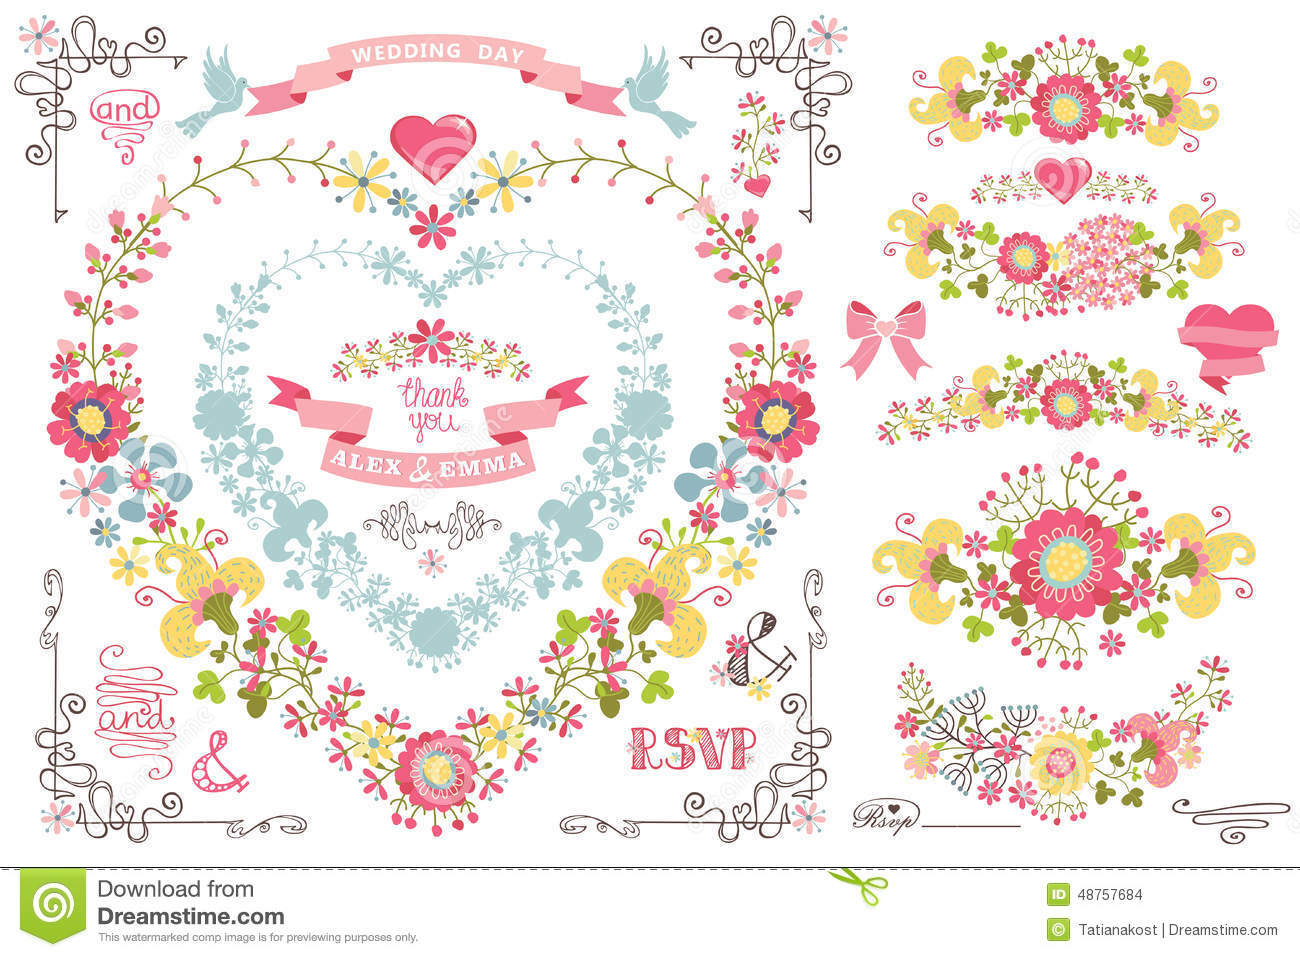 Retro wedding design template set with floral decor ribbons pigeot